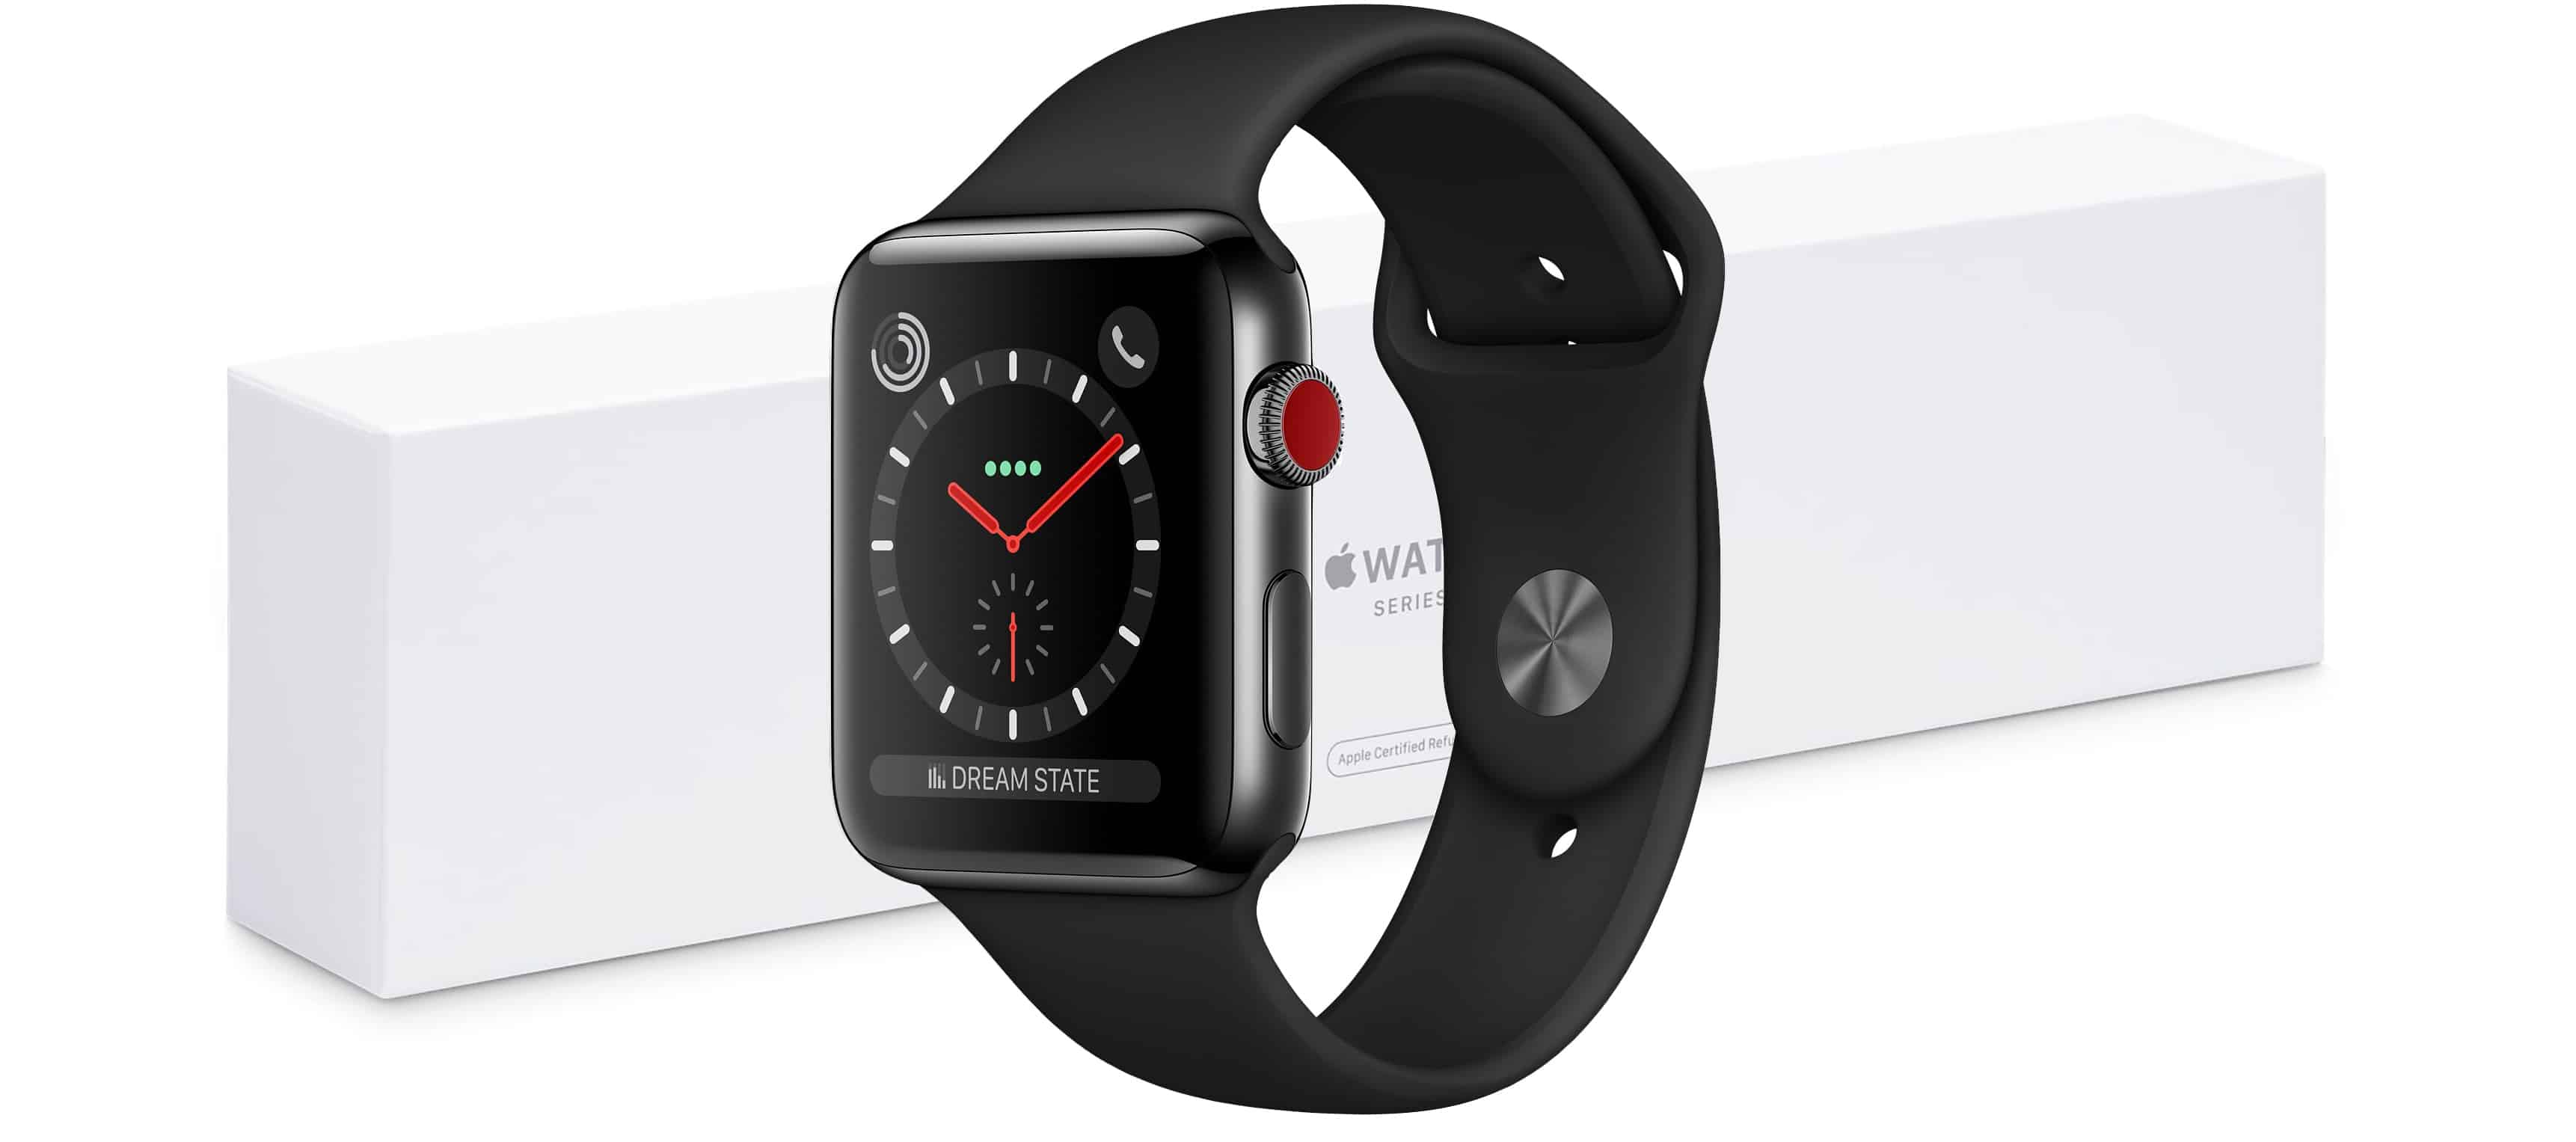 Refurbished Apple Watch LTE units are available.